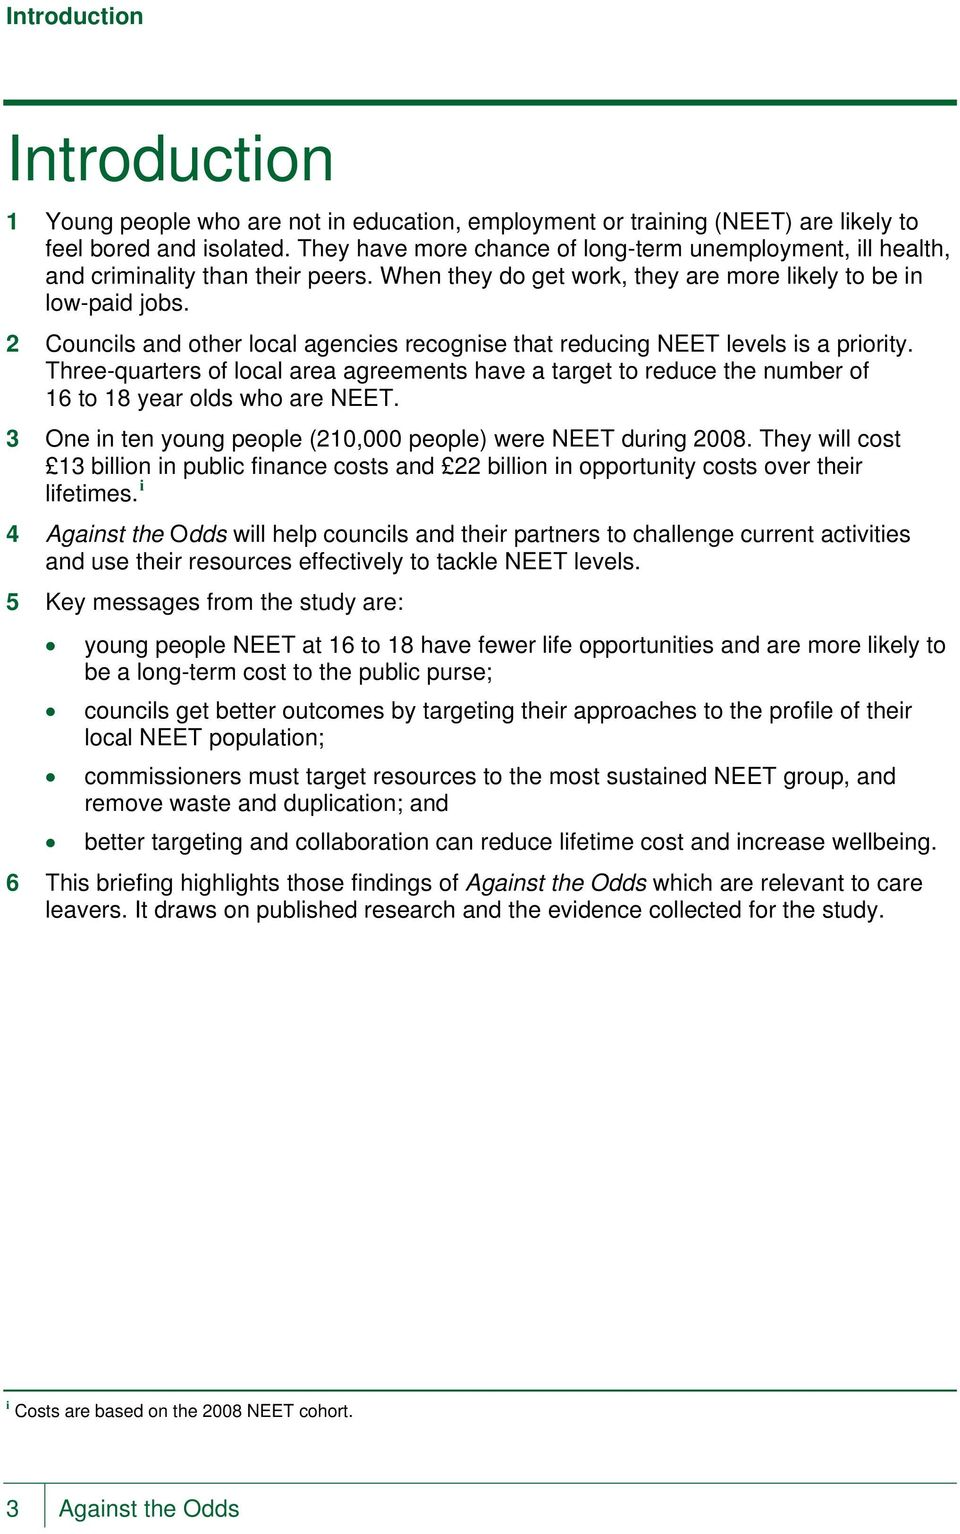 2 Councils and other local agencies recognise that reducing NEET levels is a priority. Three-quarters of local area agreements have a target to reduce the number of 16 to 18 year olds who are NEET.